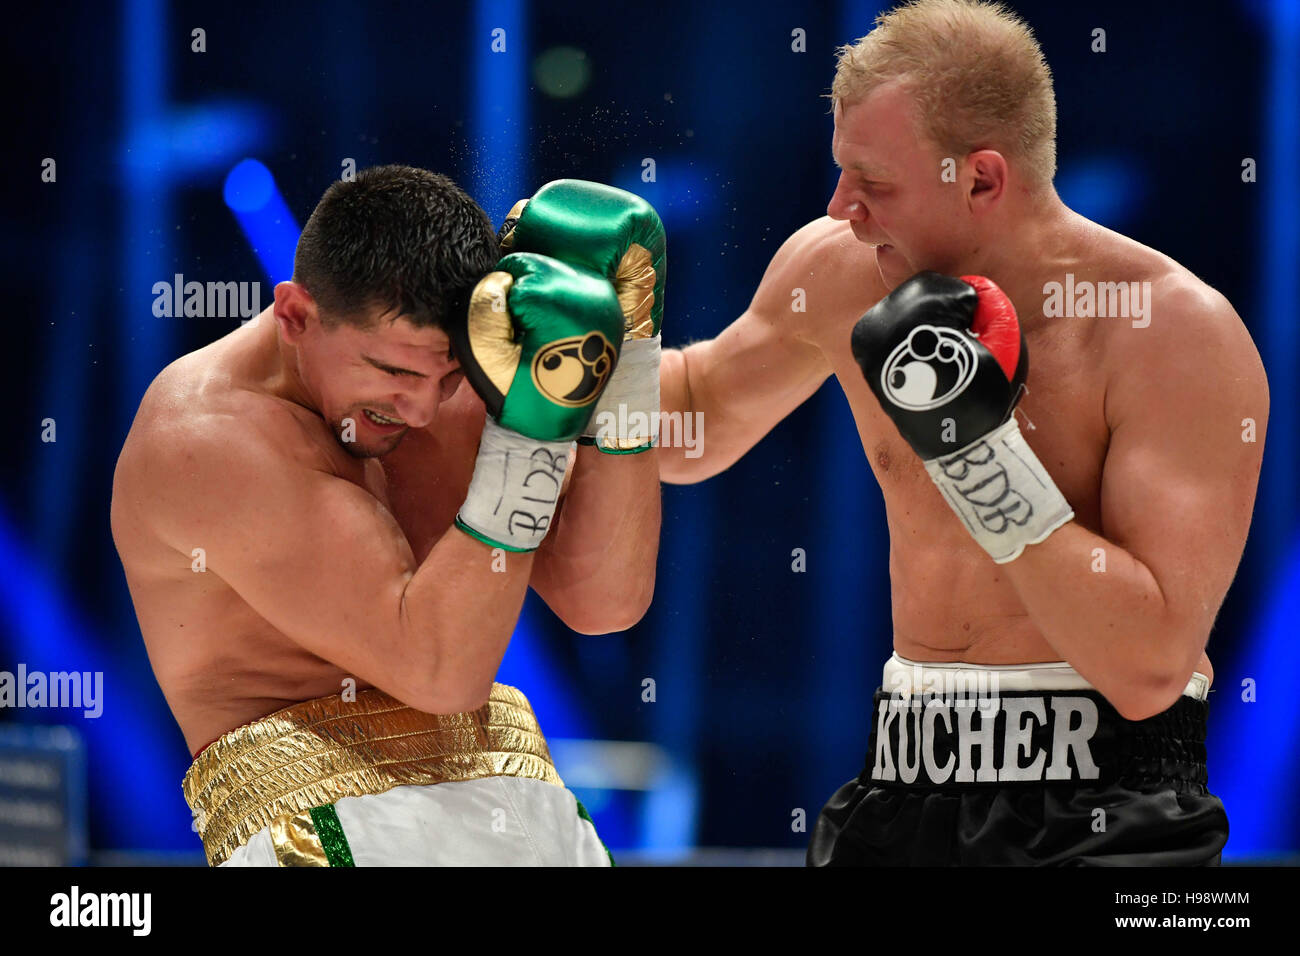 Hanover, Germany. 19th Nov, 2016. IBO World Champion Marco Huck (l) and Dmitro Kutscher from Ukraine in action during Stock Photo